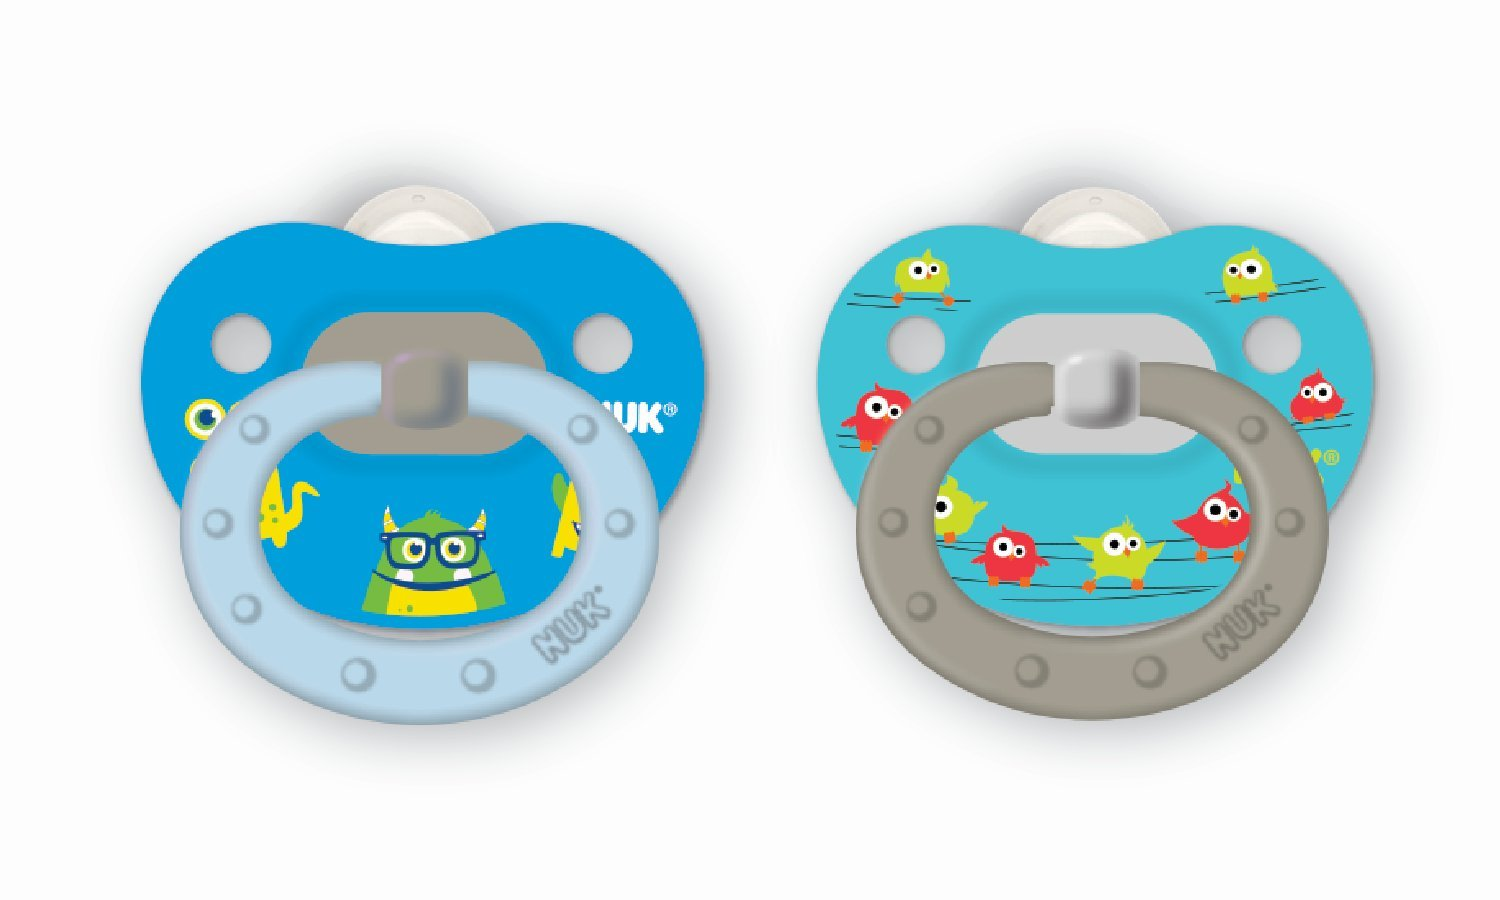 NUK Translucent Pacifier, 6-18 Months, Boy, 2 pk Graco Children' s Products - NUK 14274